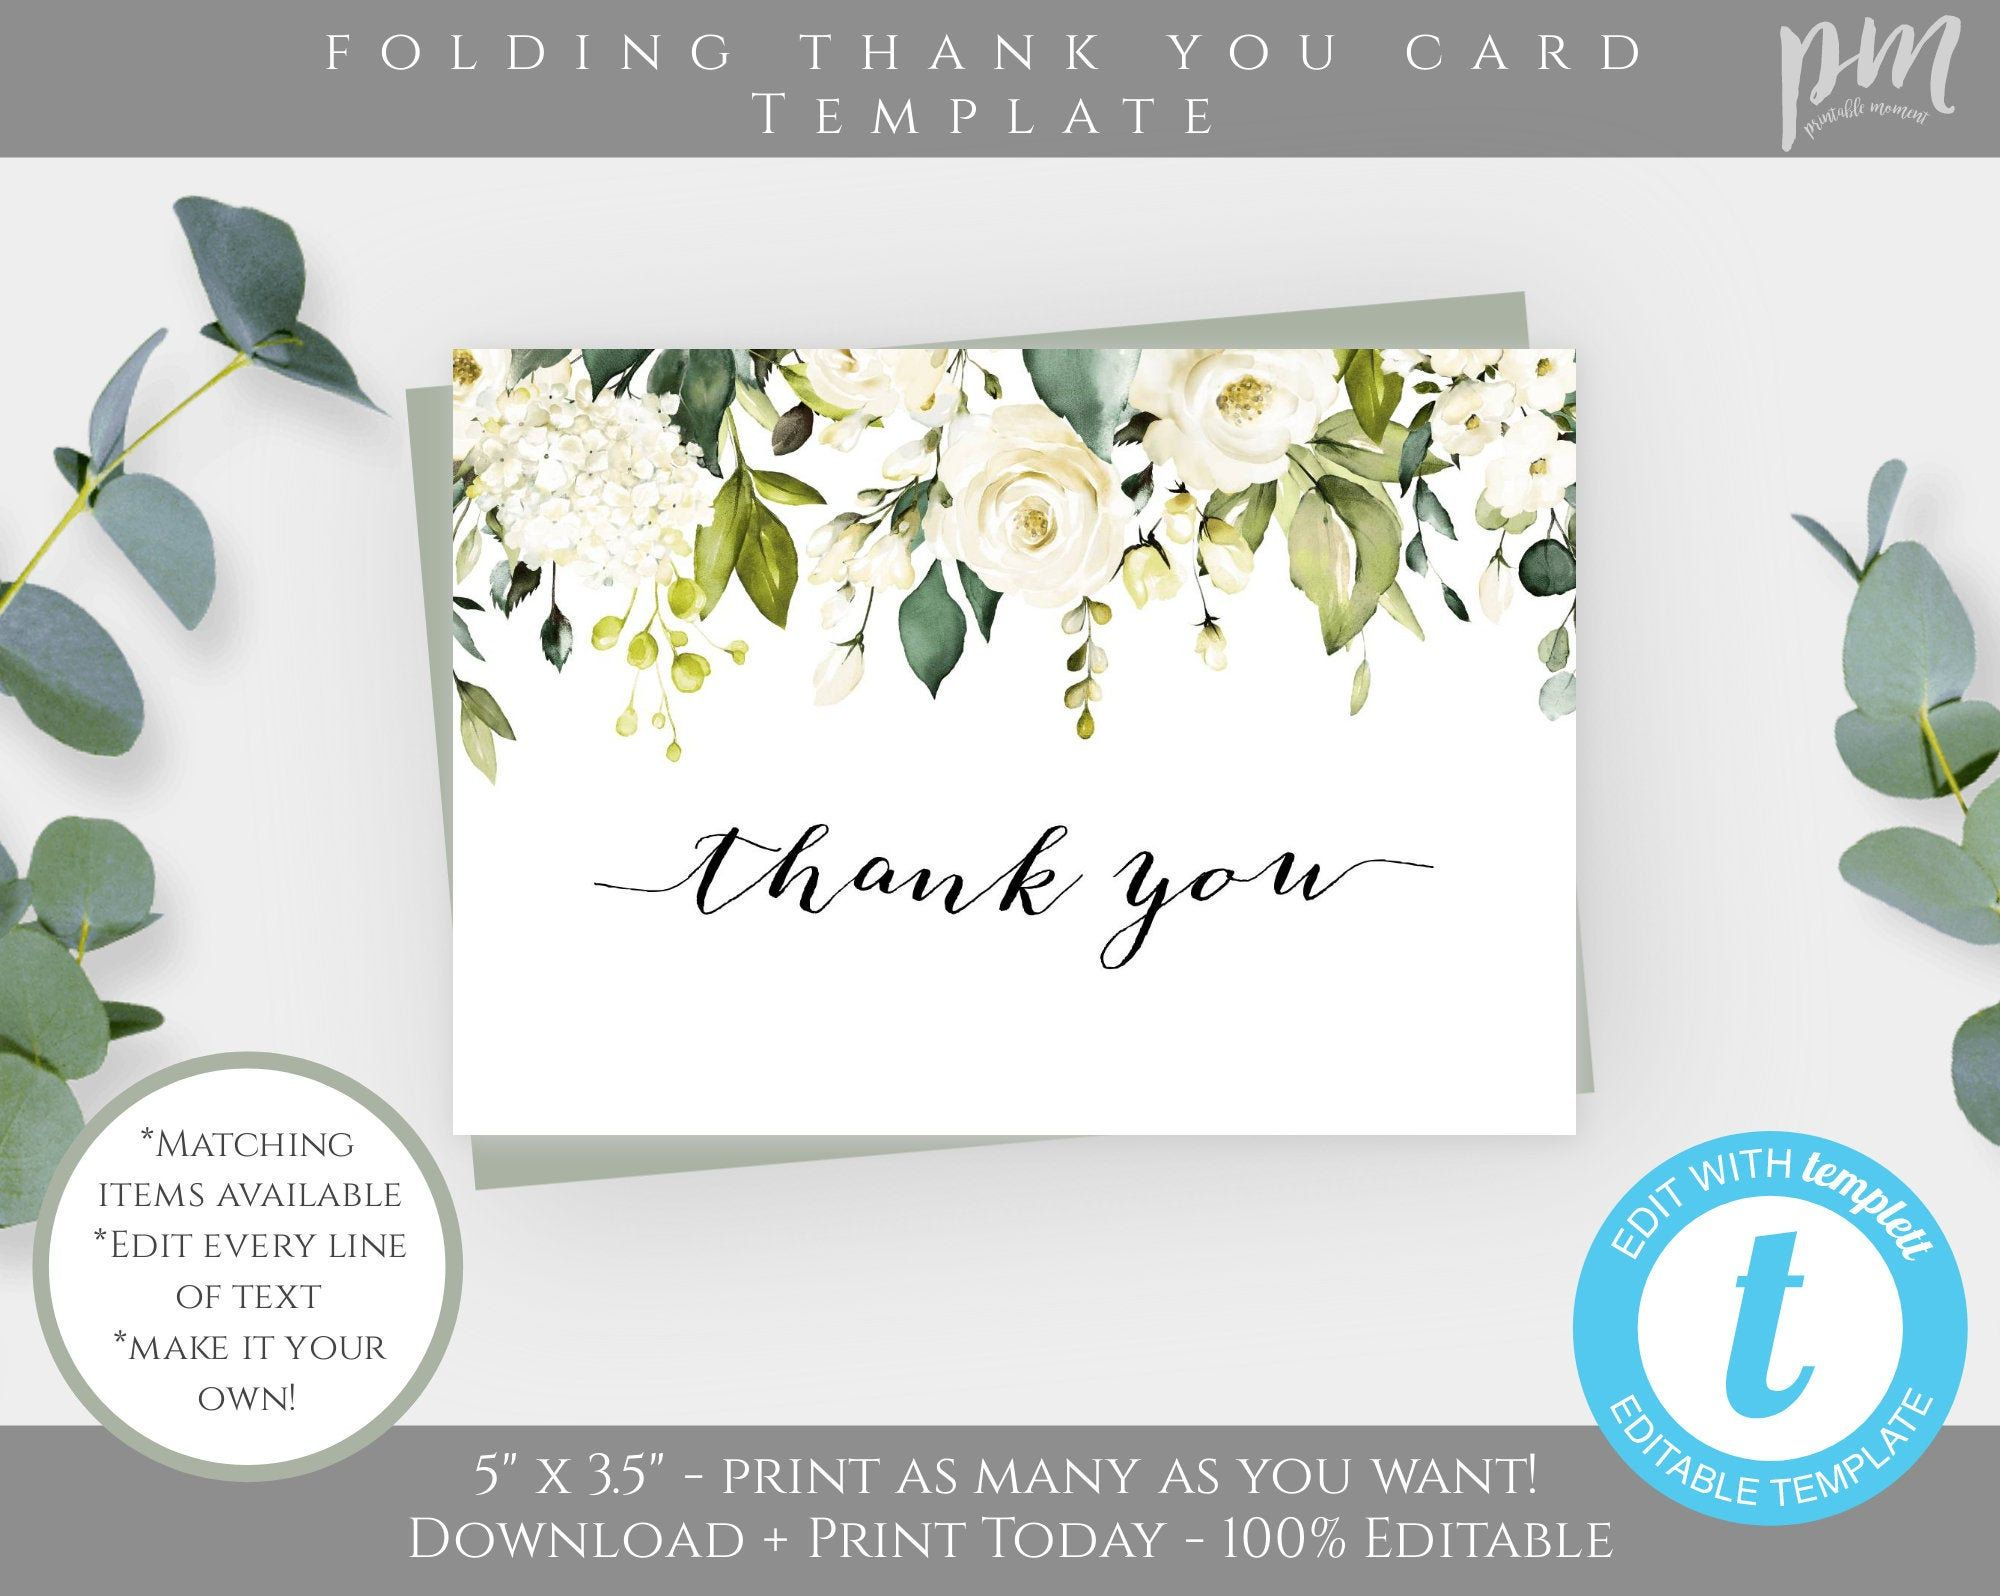 White Floral Funeral Folding Thank You Card Template Greenery